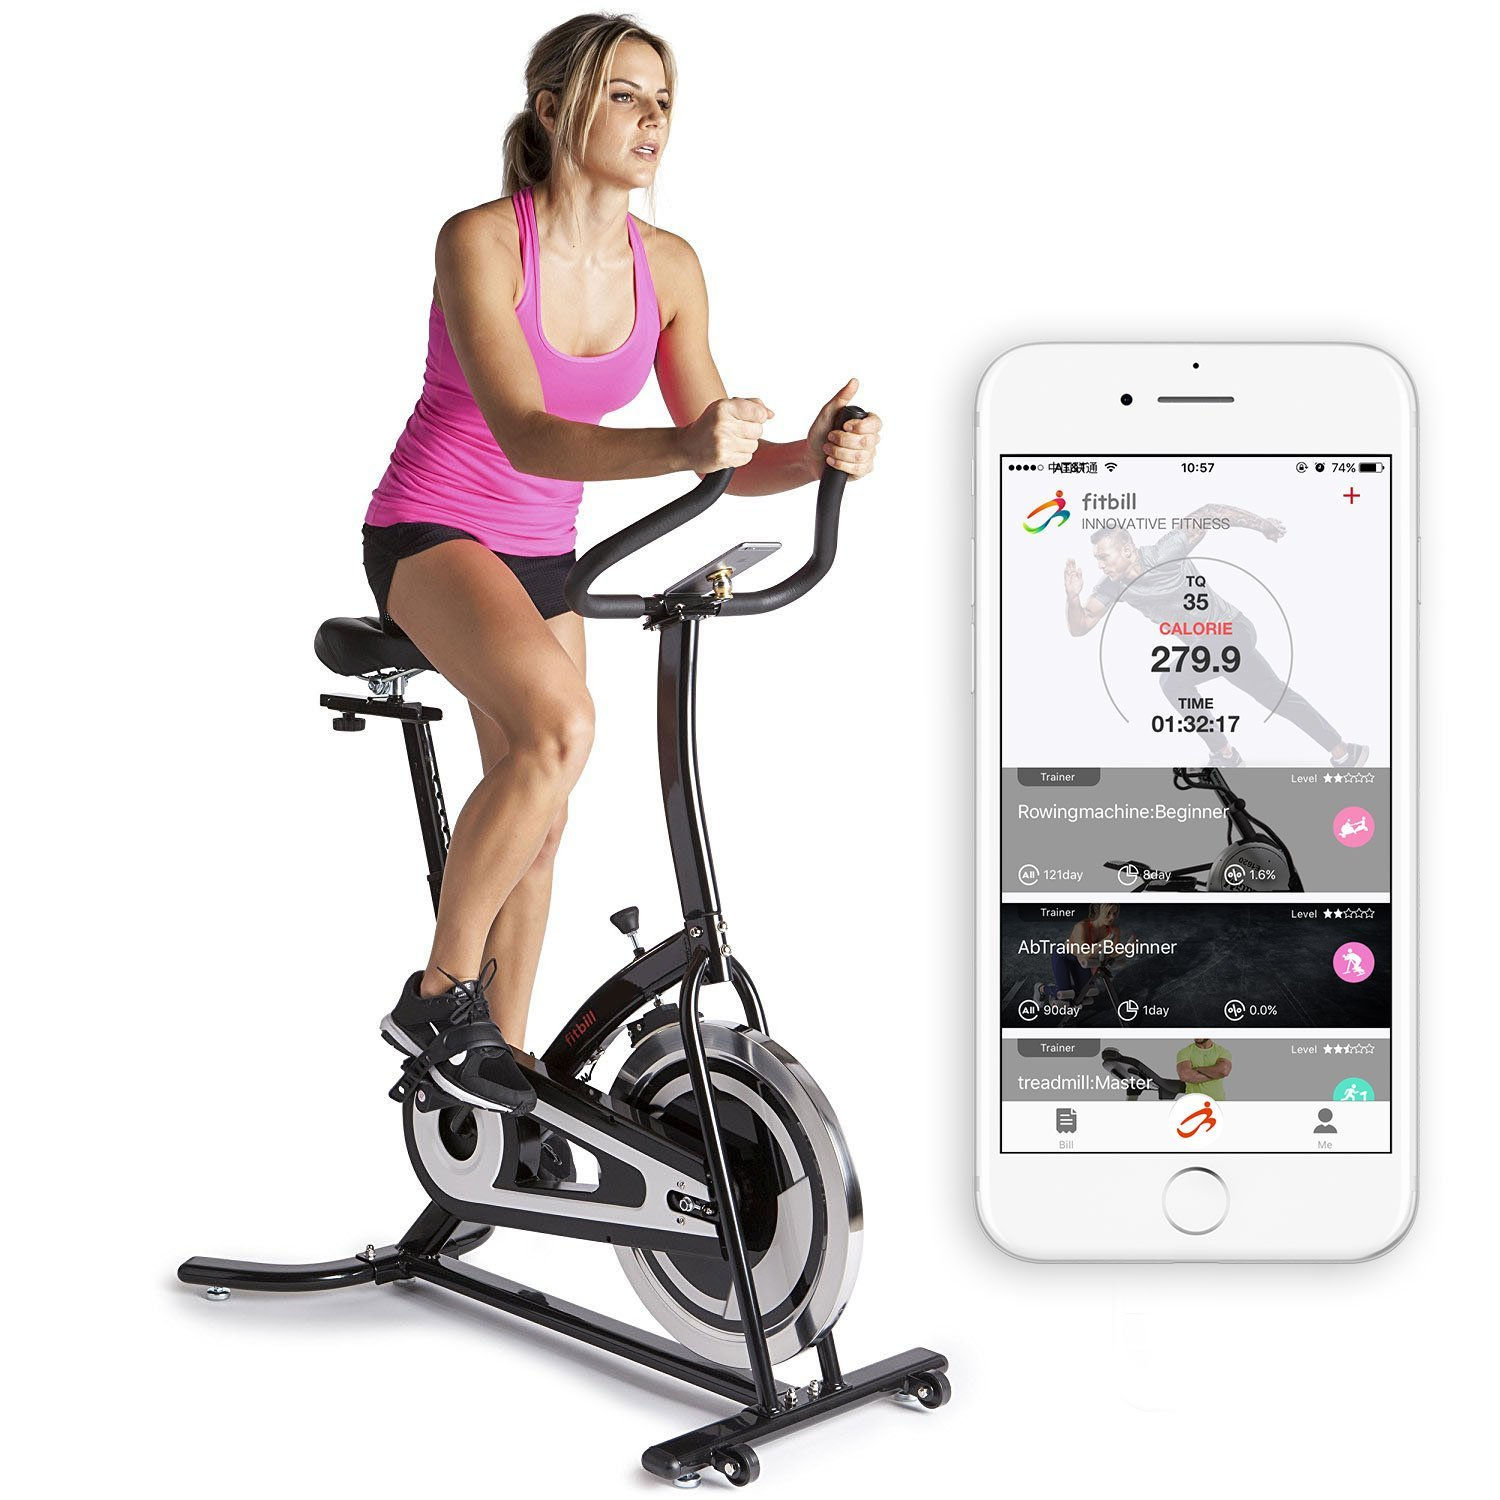 Balanced fitness and cycling signal mountain - Amazon Com Fitbill B603 Smart Indoor Cycling Bike With Bluetooth Sensor Body Weight Scale Fitness App Sports Outdoors